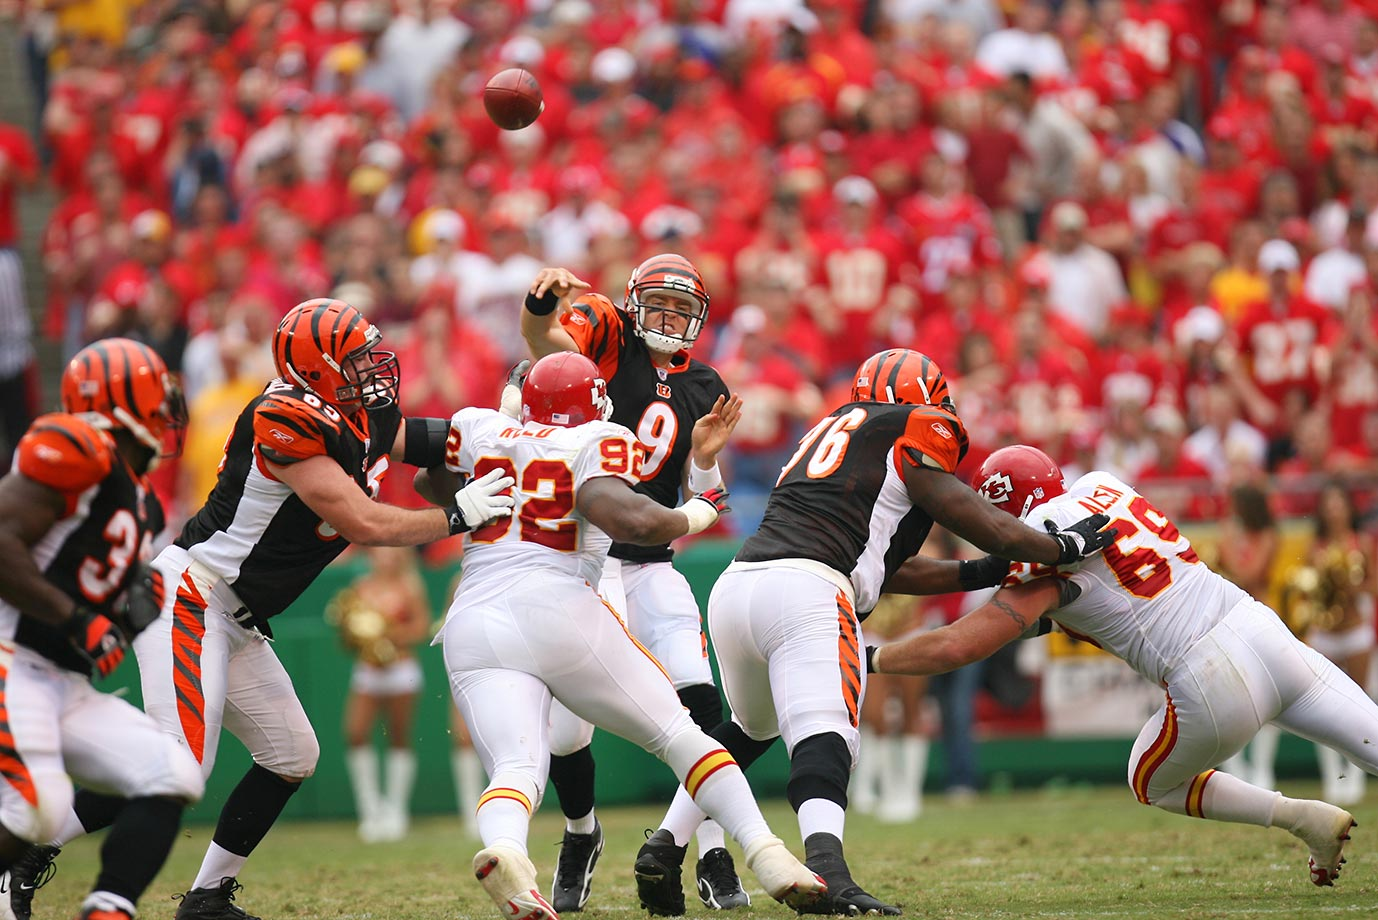 Palmer not only started the September season opener against the Chiefs, but also helped lead Cincinnati to a 23-10 victory.